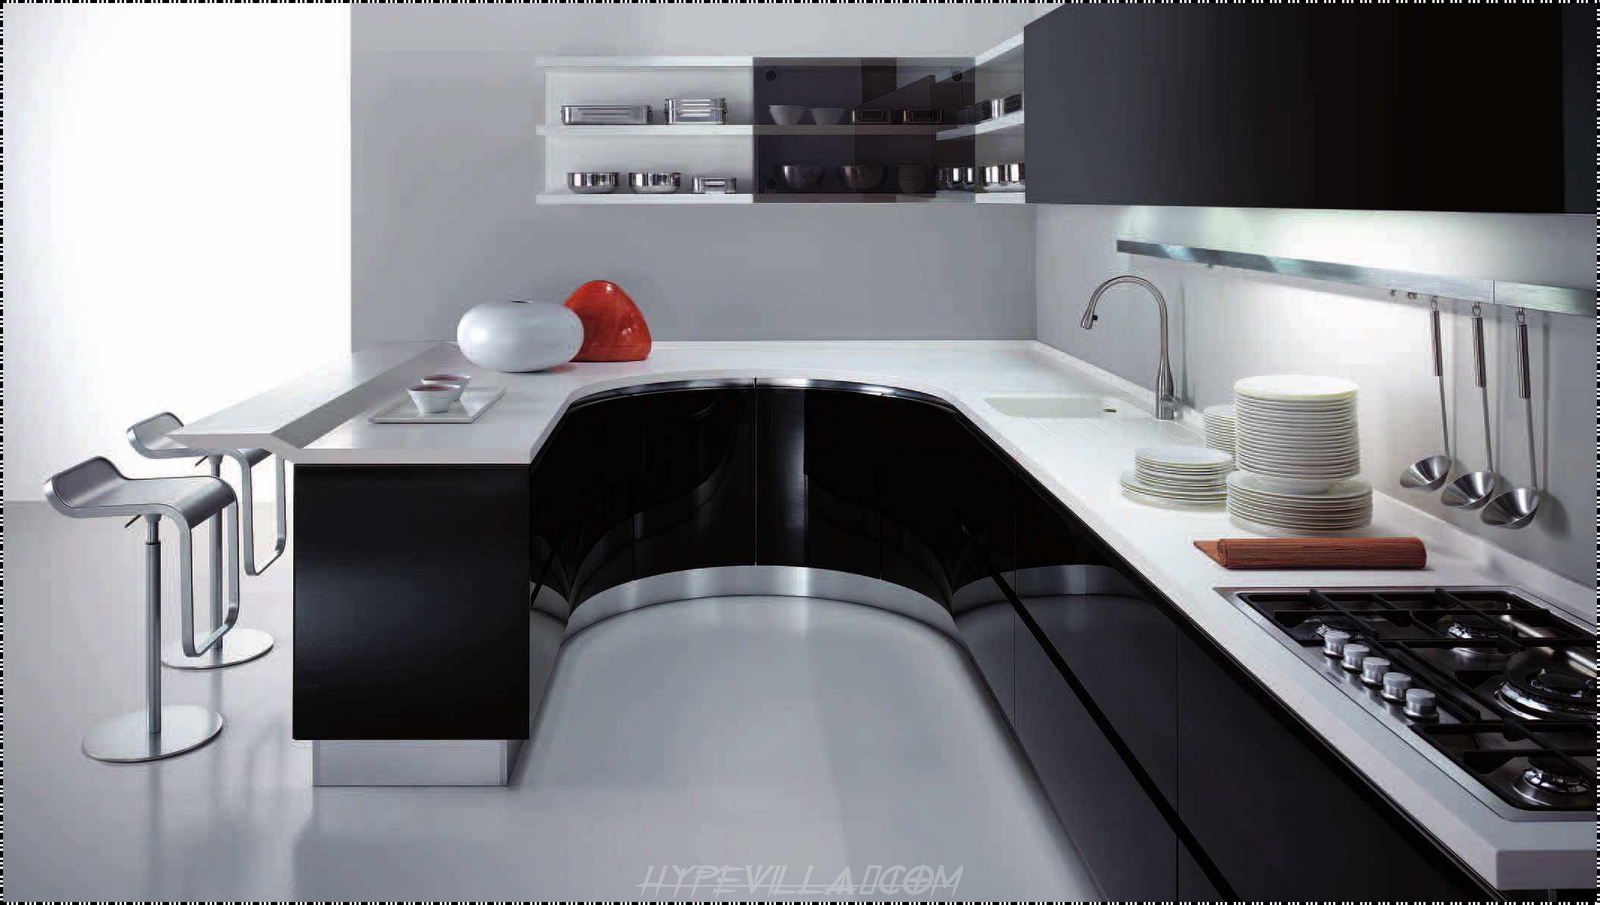 The Best Kitchen Design In The World